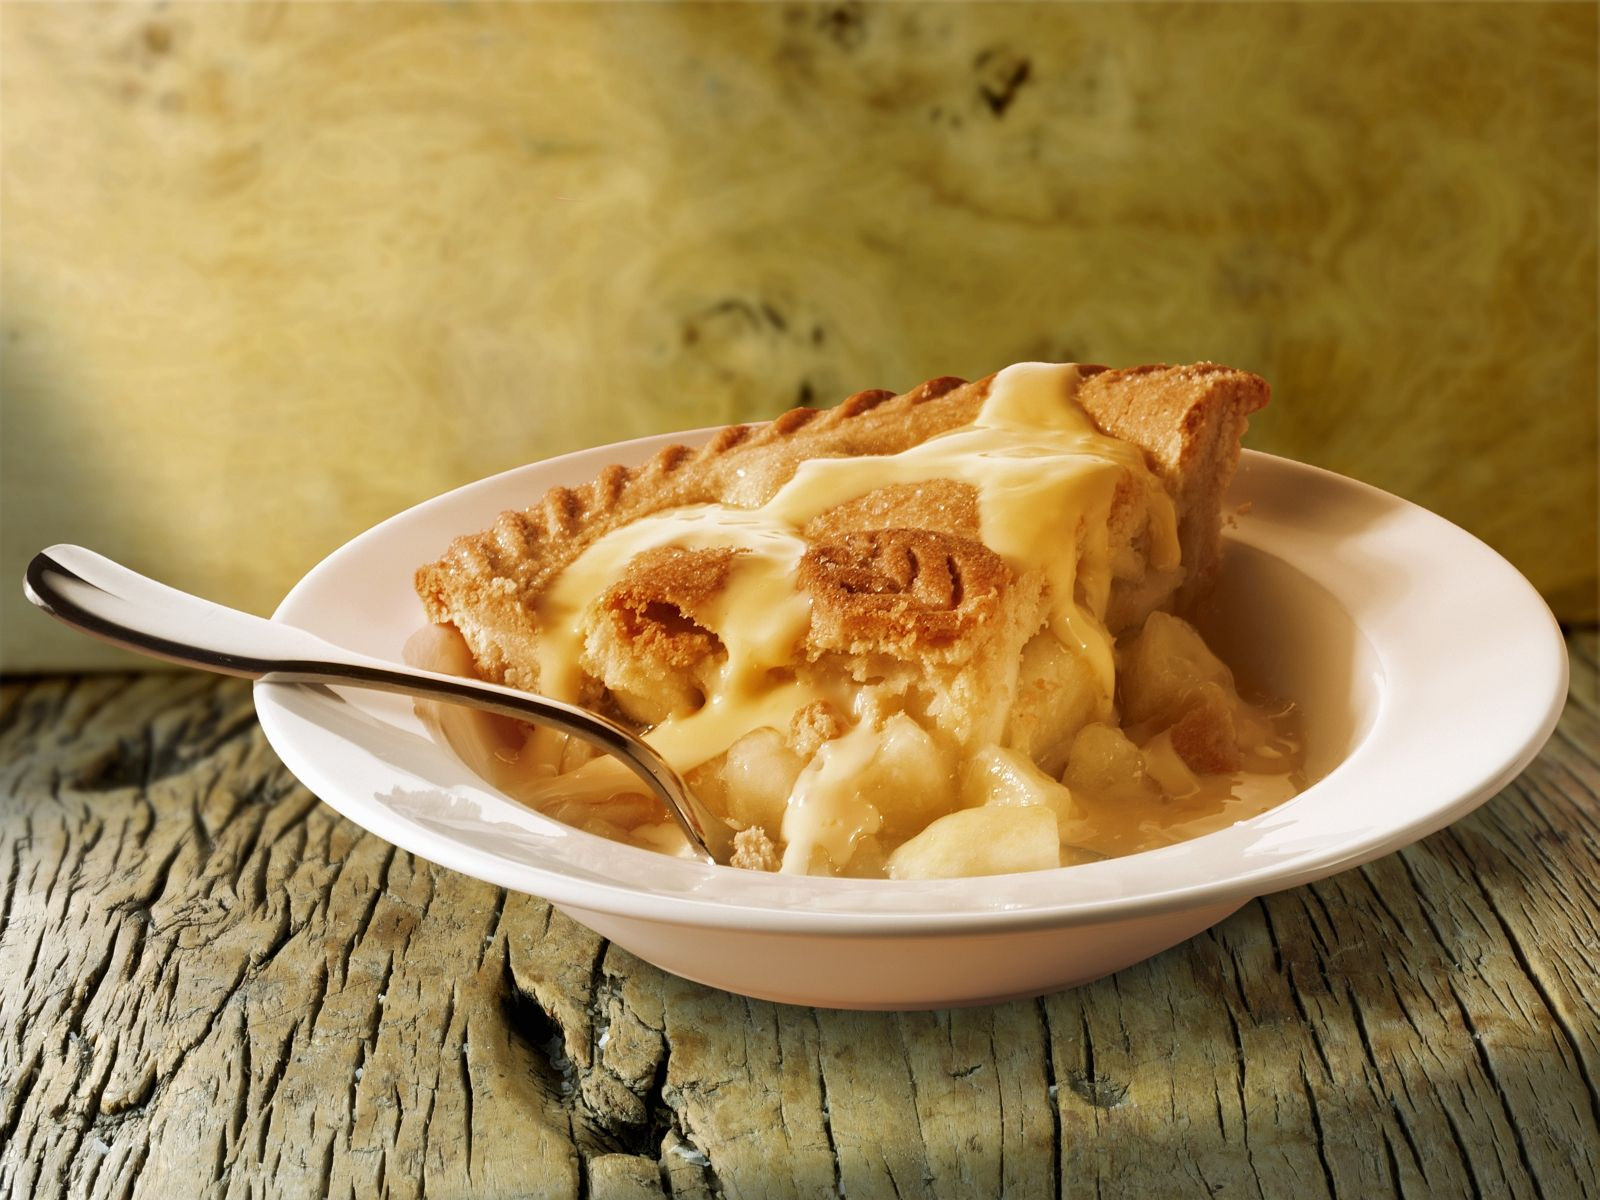 Pictures Of Apple Pie And Custard